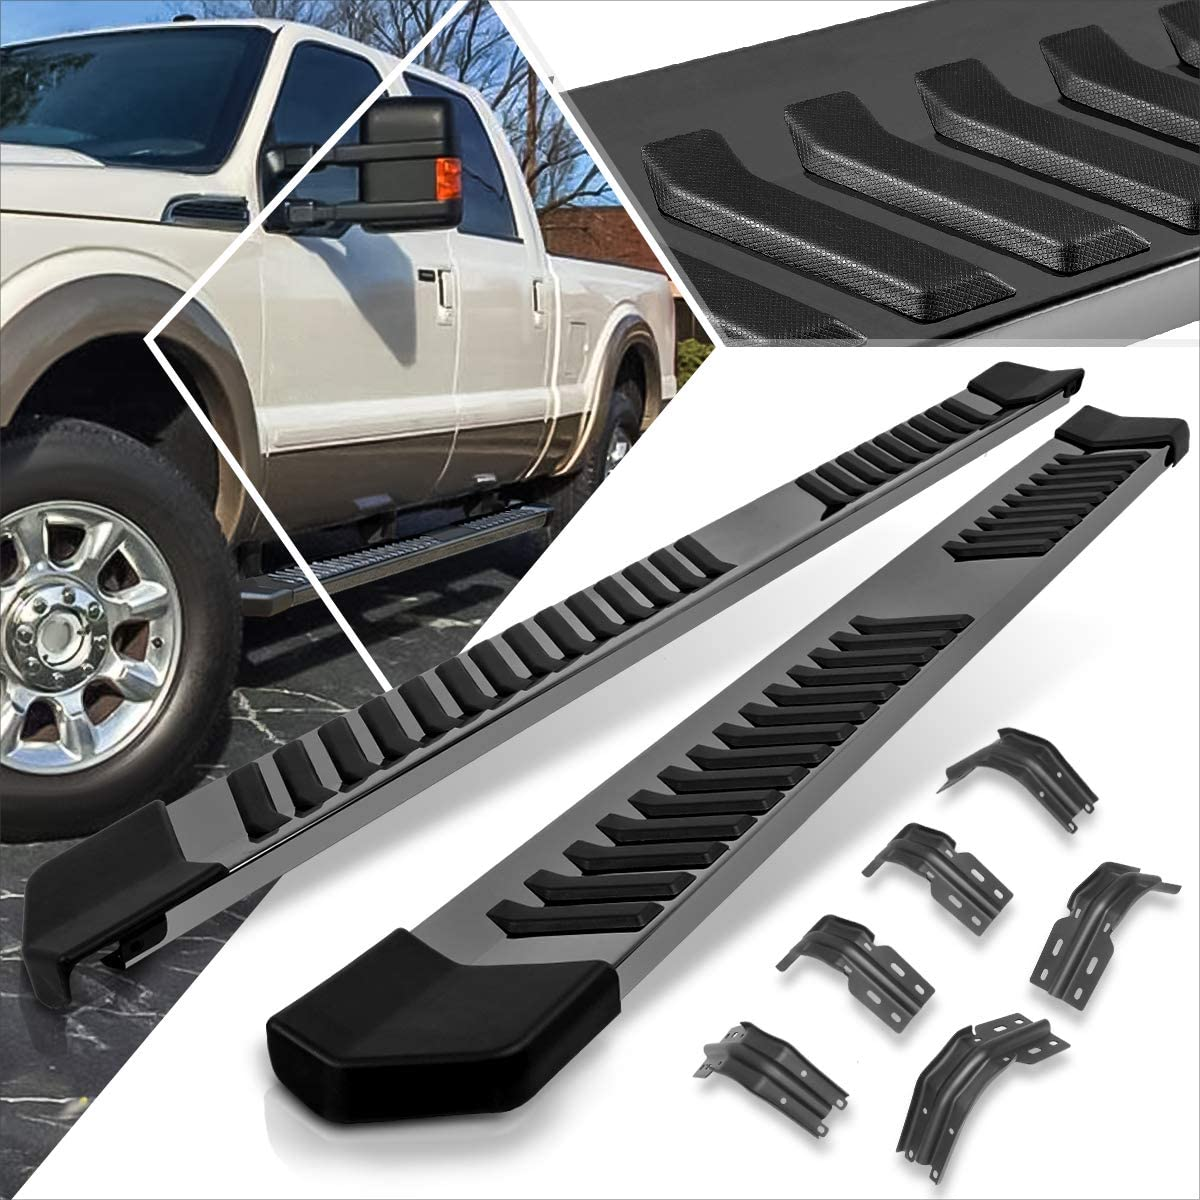 6 Inches Chrome Running Board Side Step Nerf Bar Compatible with Ford F250//F350 SD SuperCrew Cab 99-16